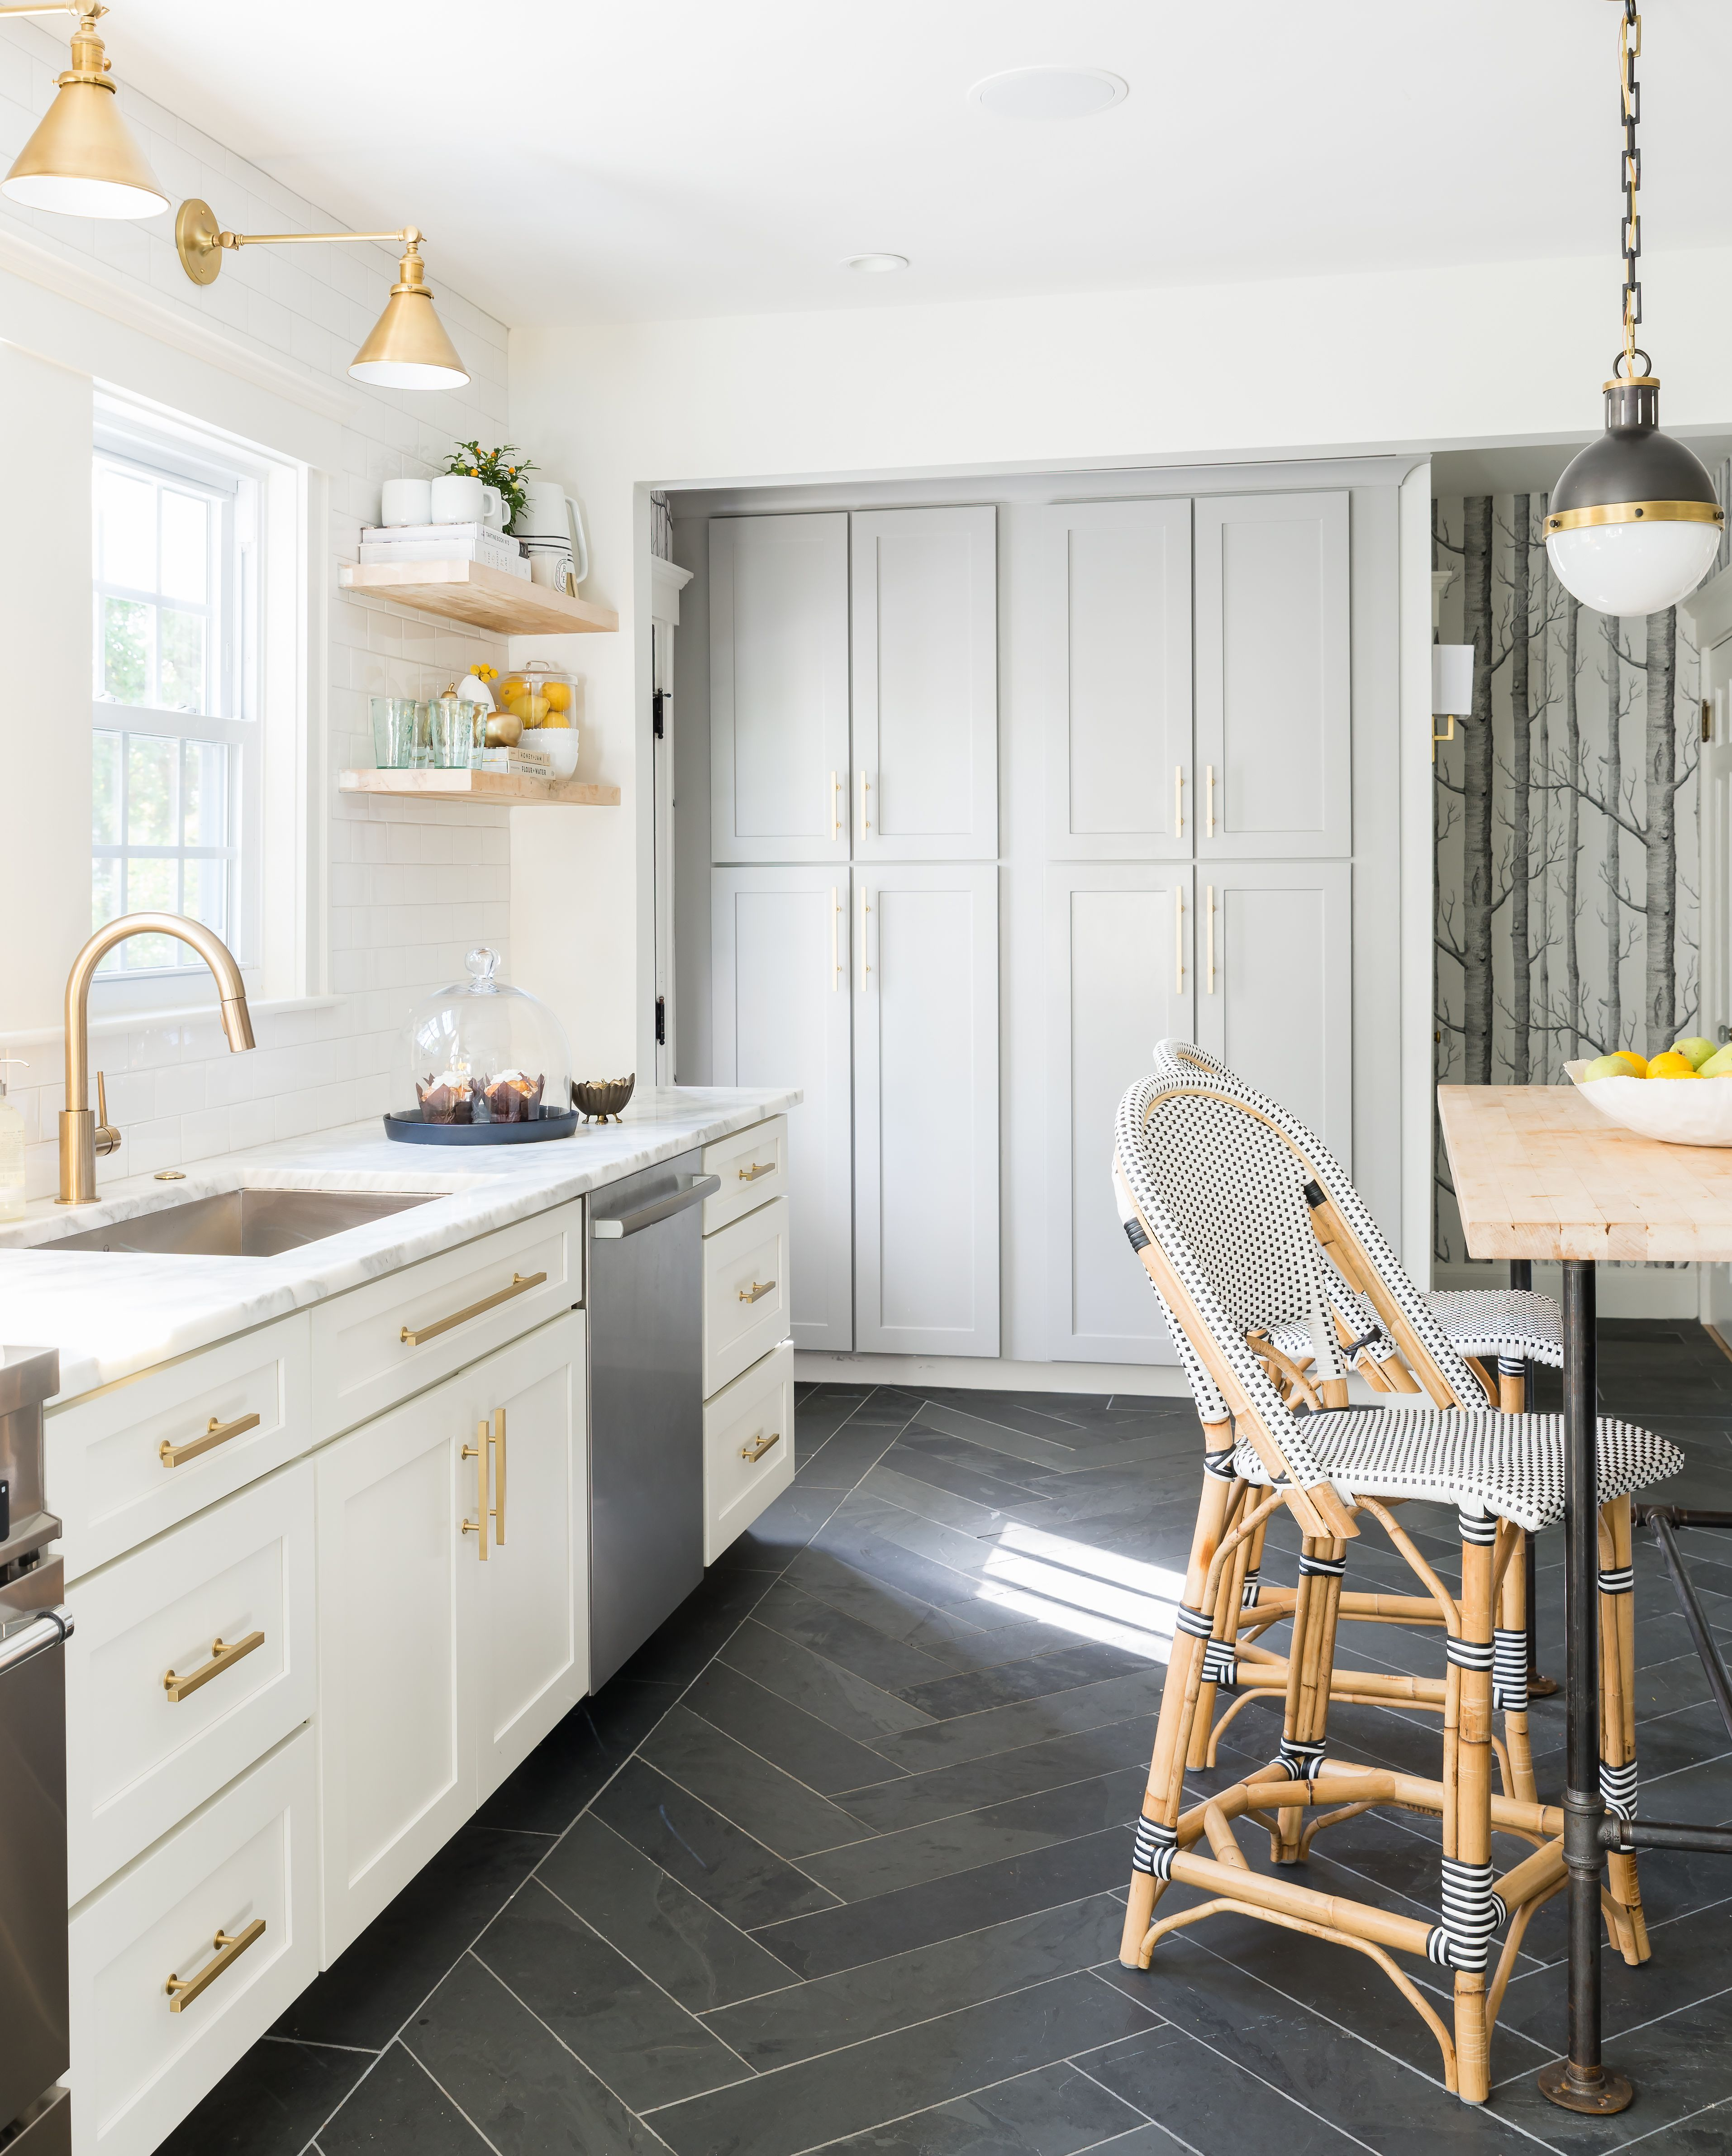 Slate Floor Kitchen Round Black Table Best 15 Tile Ideas Dream Home Pinterest By Showyourvote Org